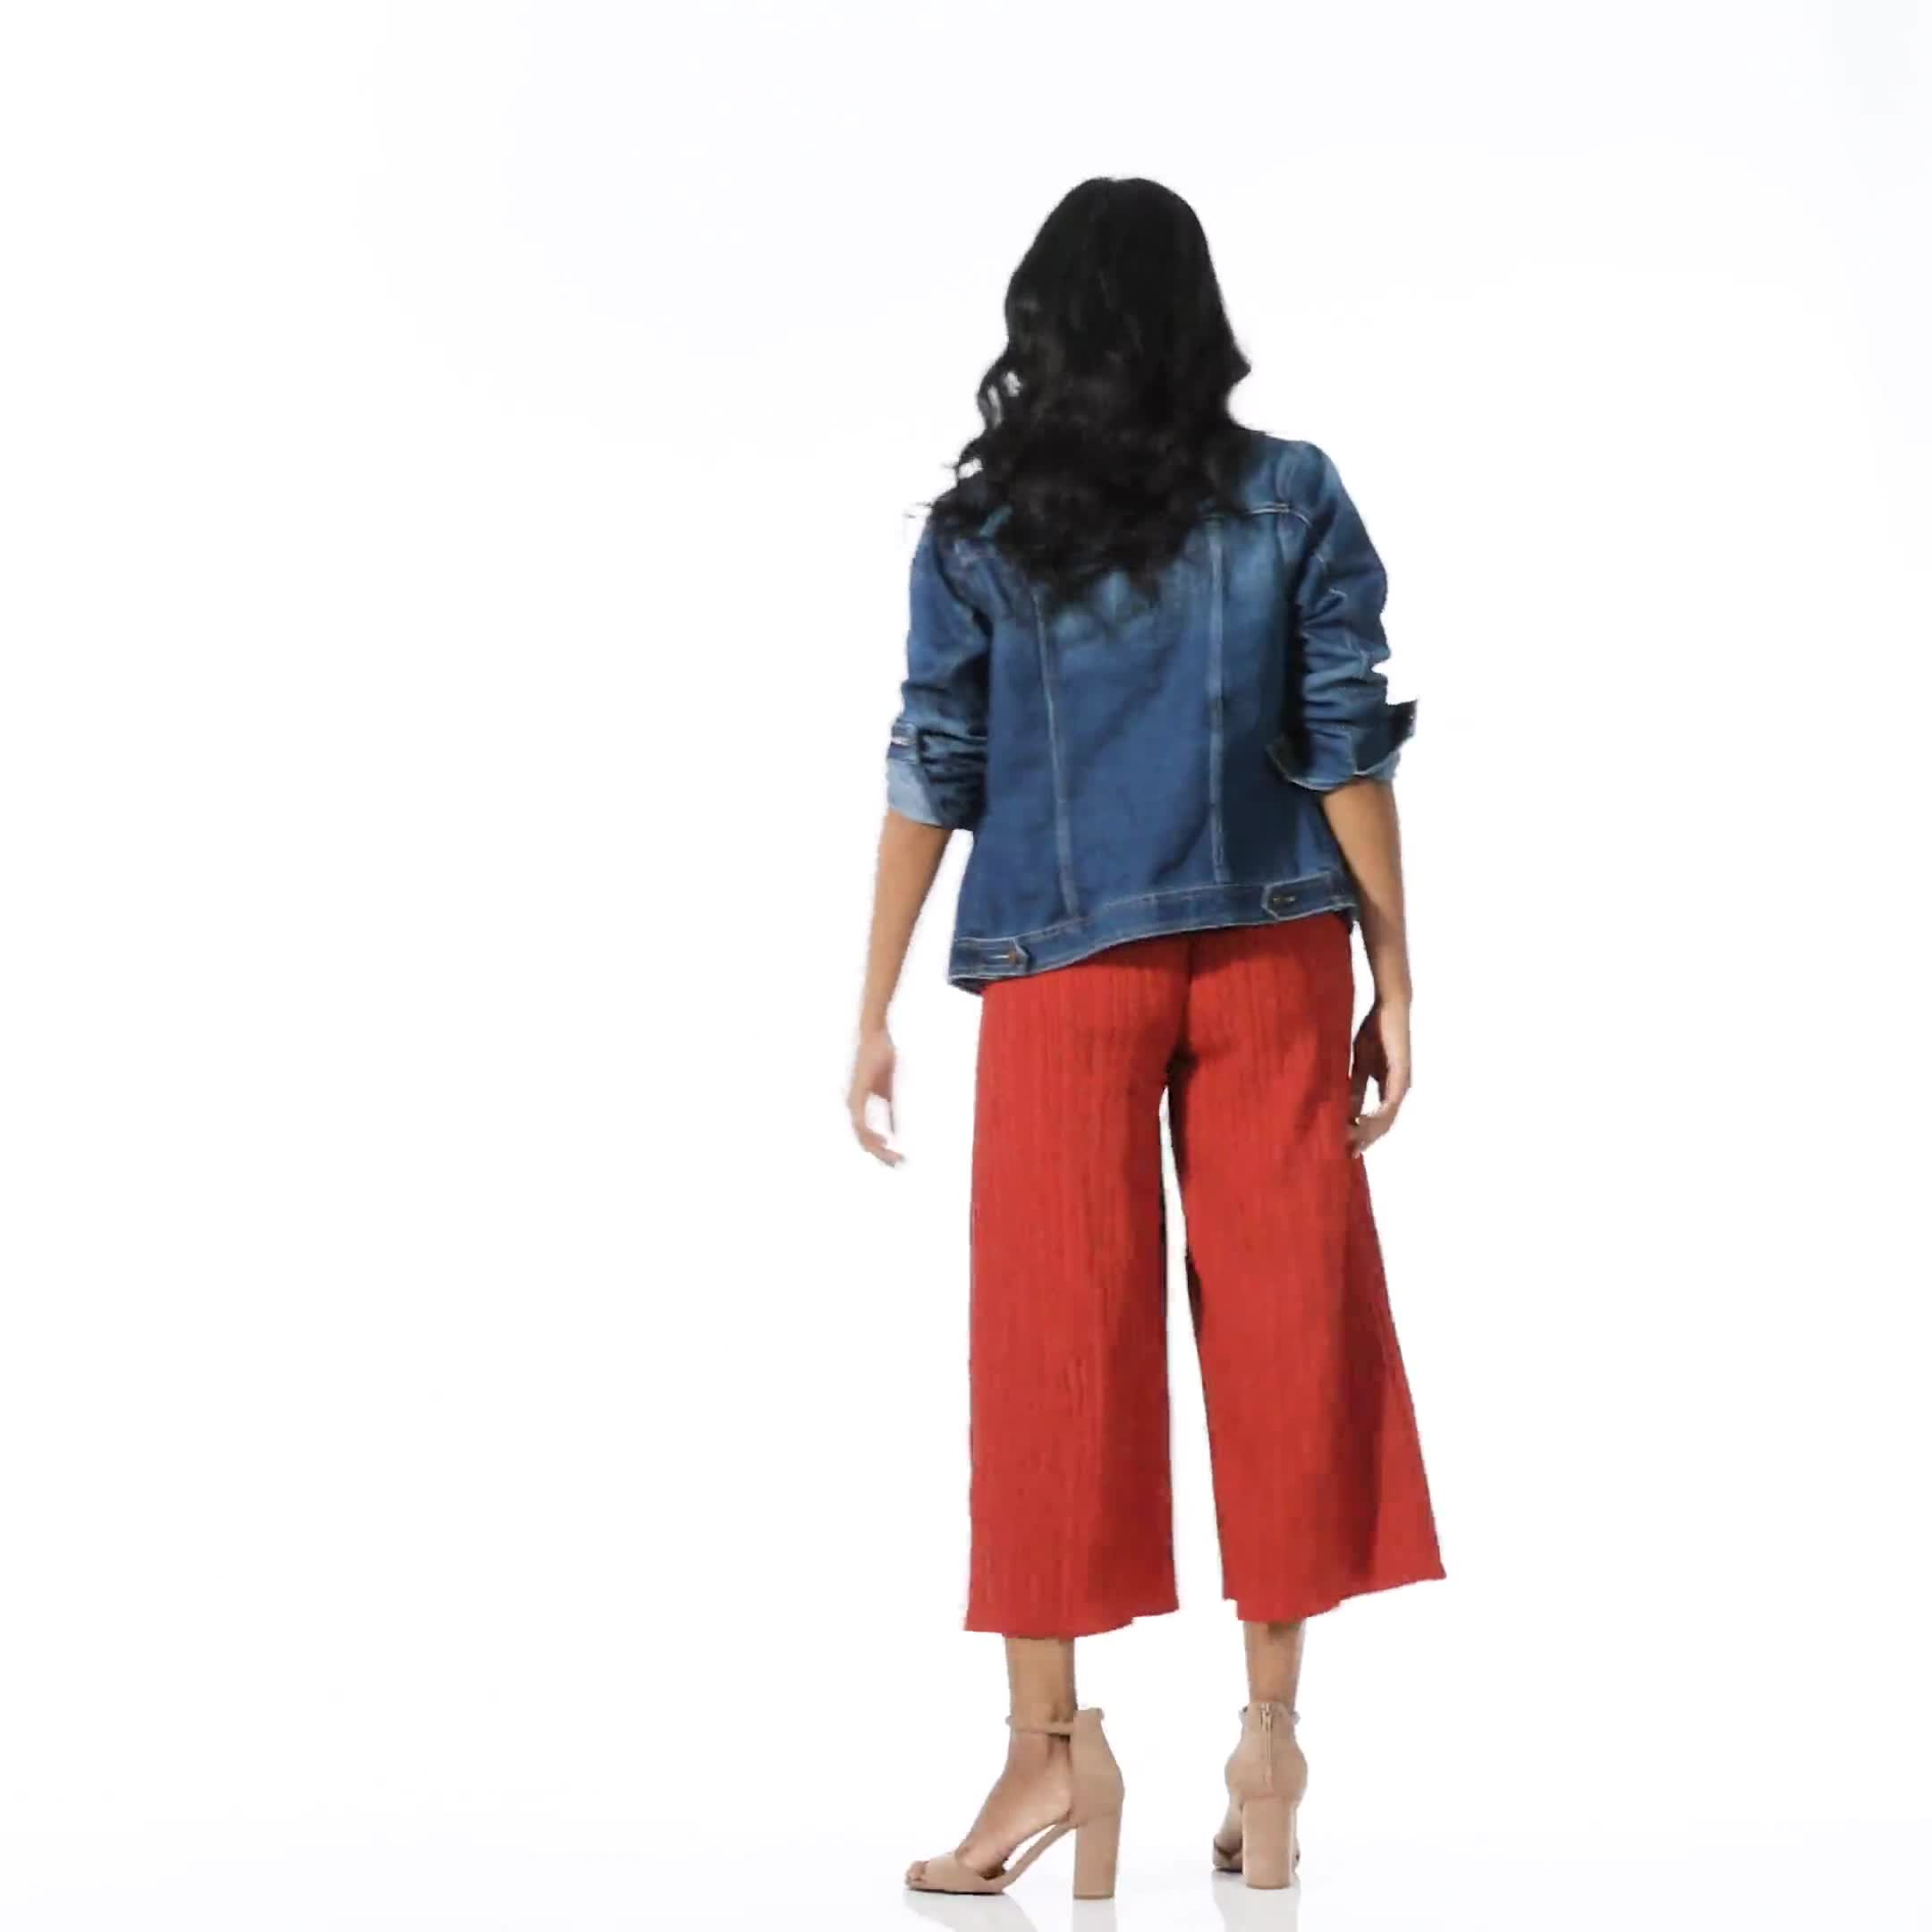 Cropped Palazzo Pant with Elastic Waistband - Misses - Video